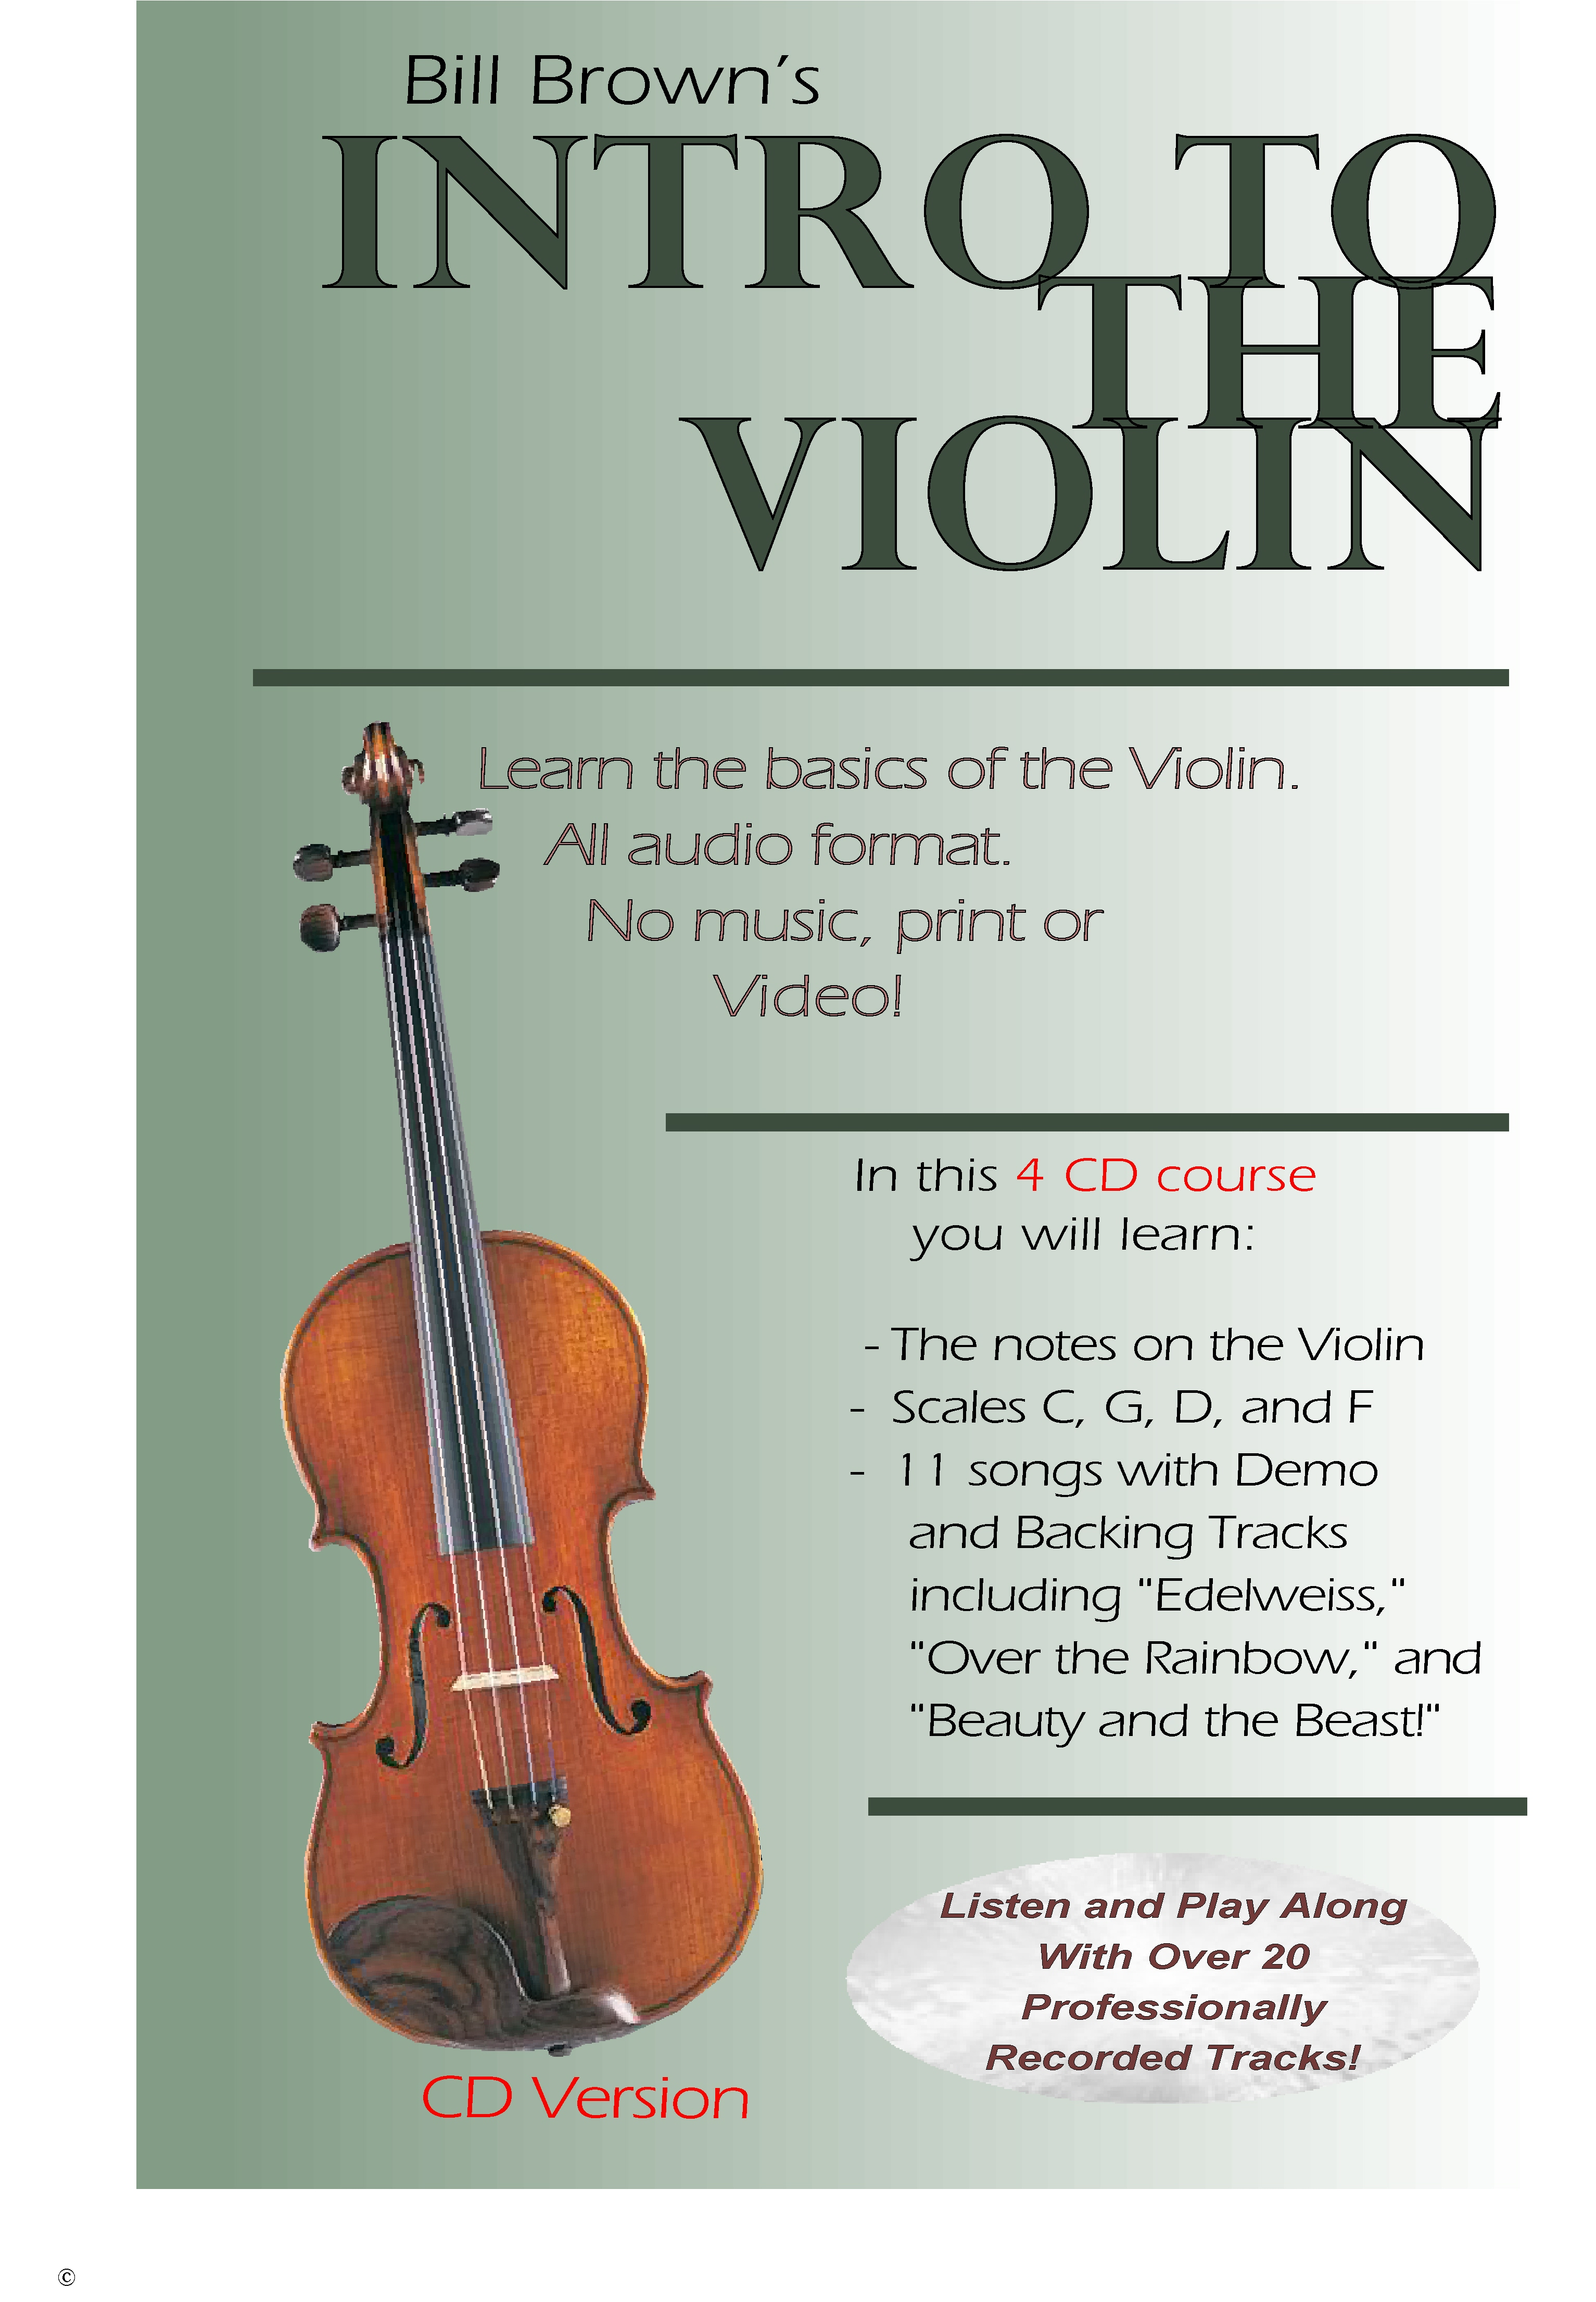 Intro to the Violin